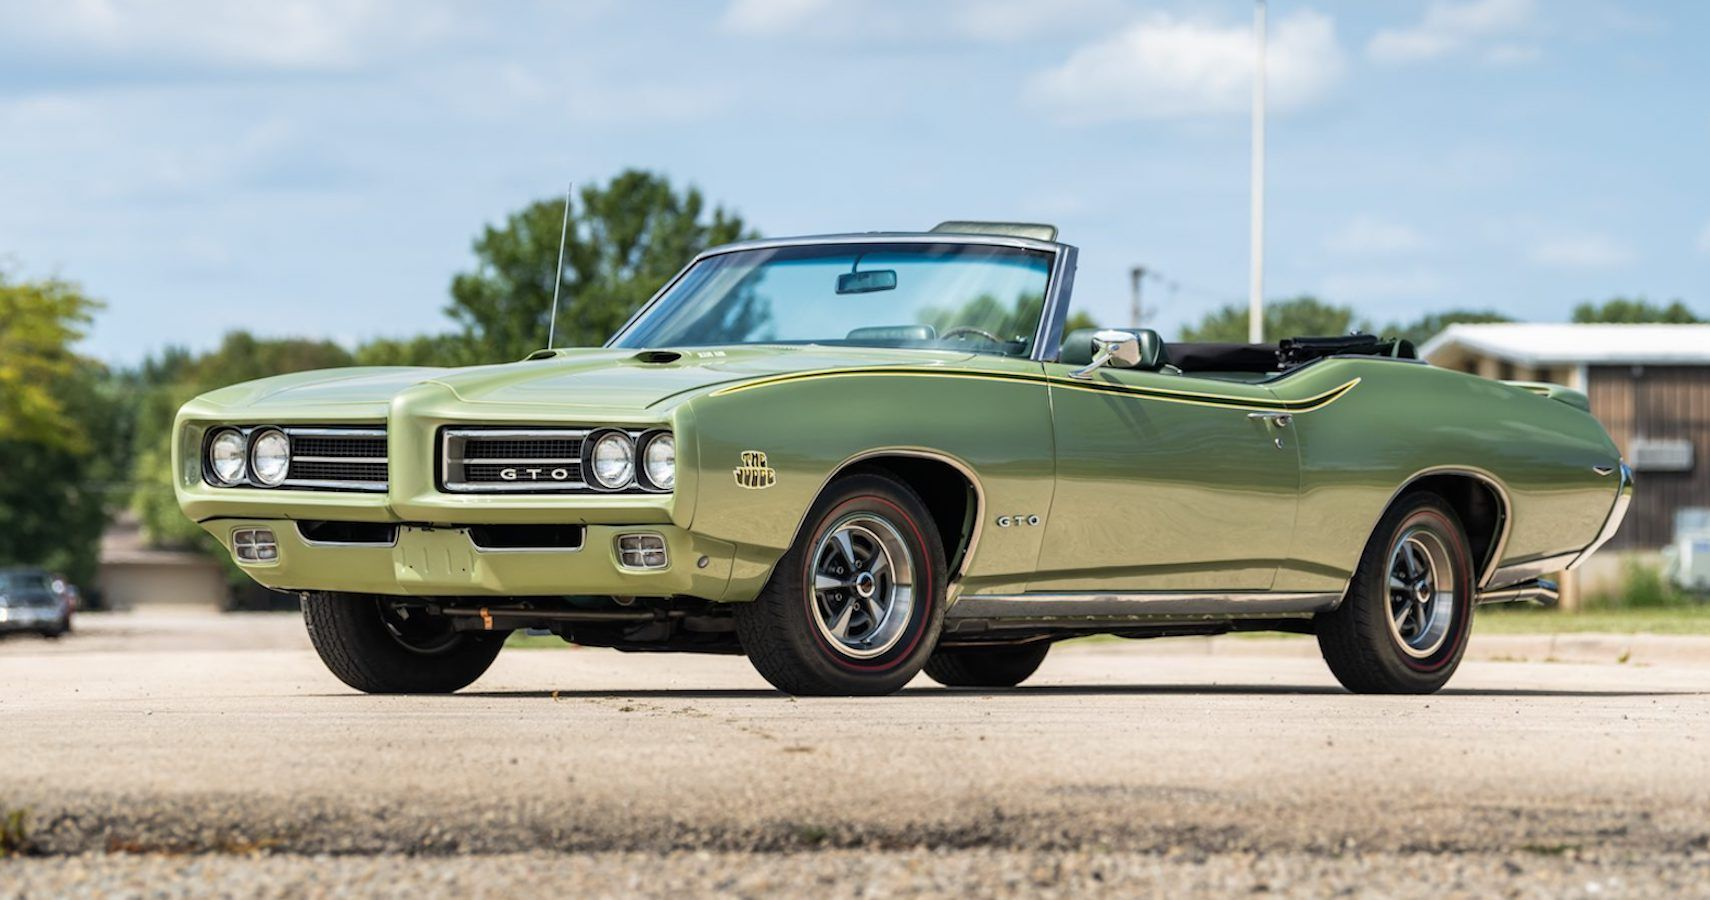 Bring A Trailer: This 1969 Pontiac GTO Judge Convertible Will Make You Green With Envy